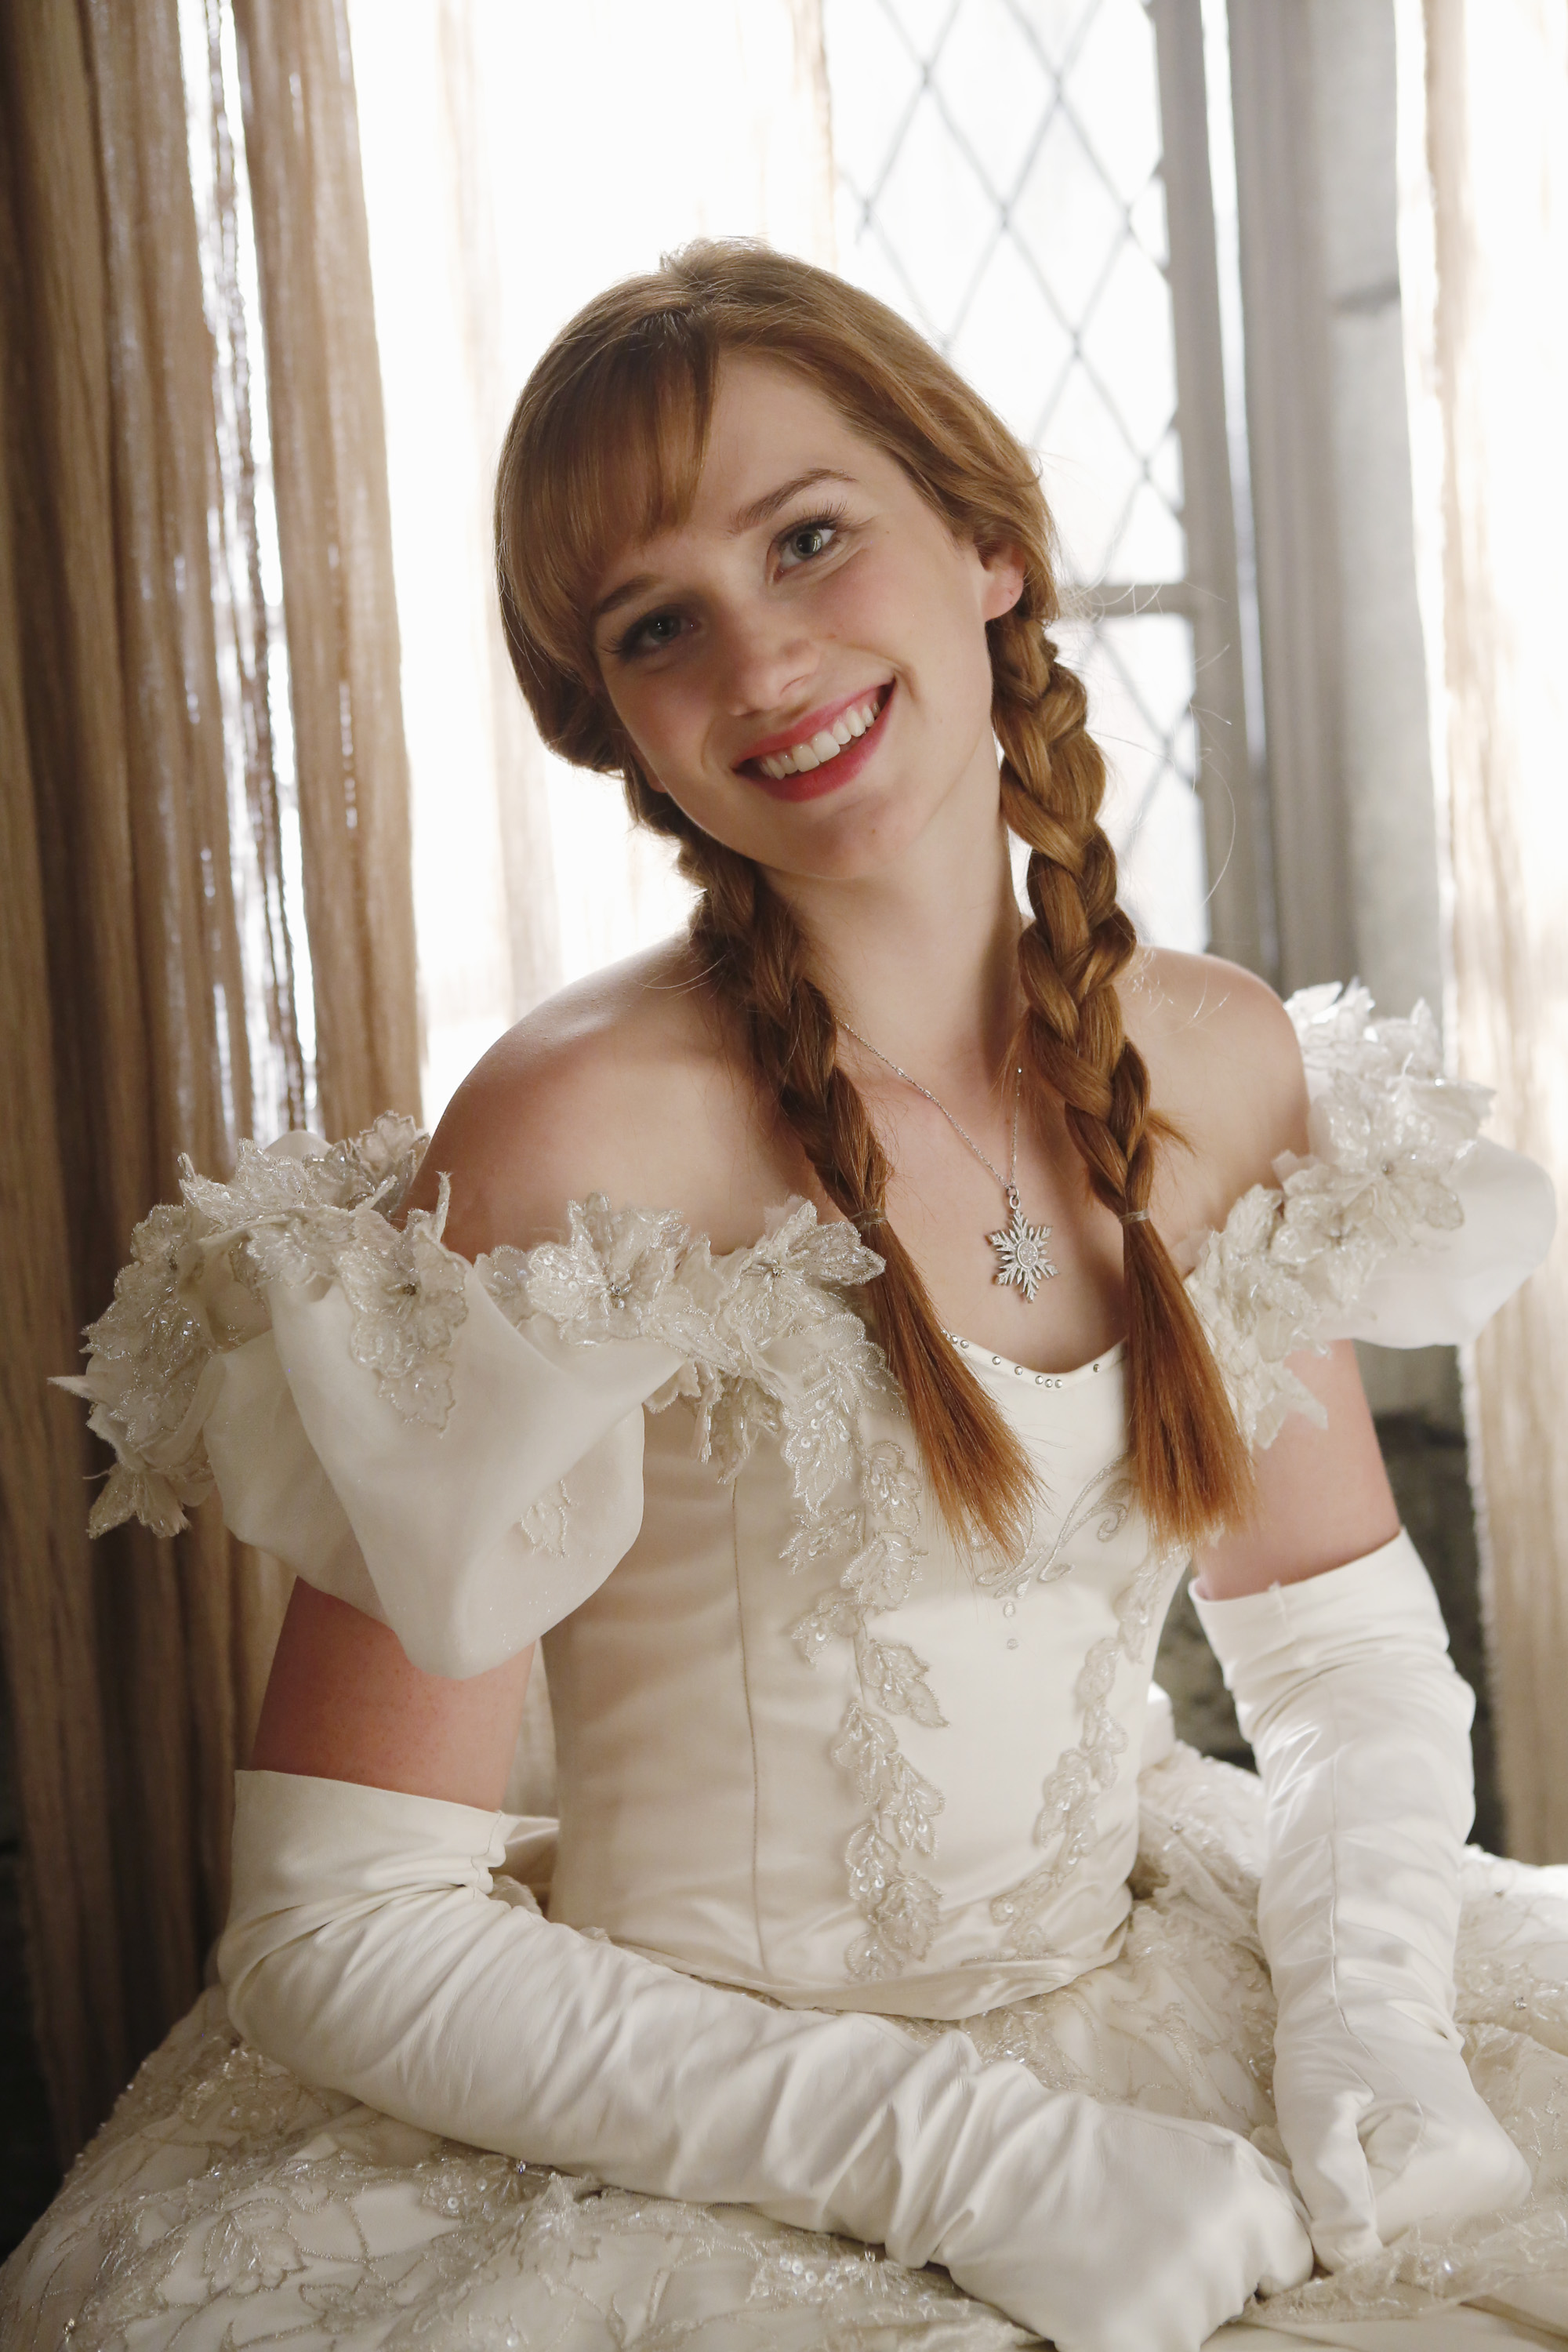 Coc Elizabeth Lail Elsa Once Upon A Time Anna Gown Bride Wedding Dress Bridal Clothing Beauty